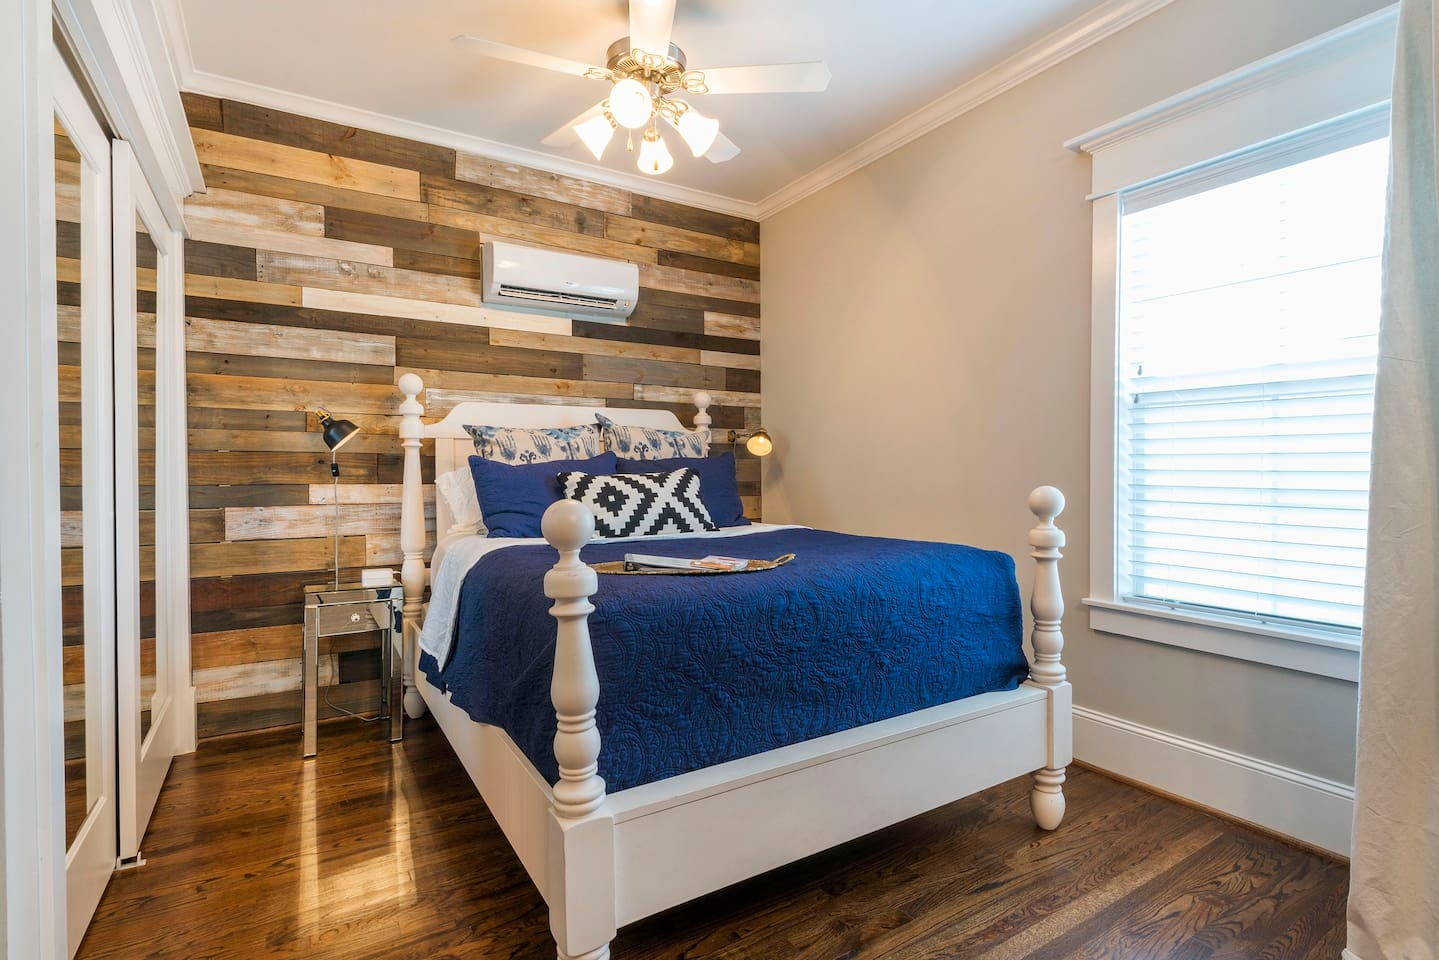 Queen size pillow top mattress flanked by reading lights and charging stations all set against a reclaimed wood wall